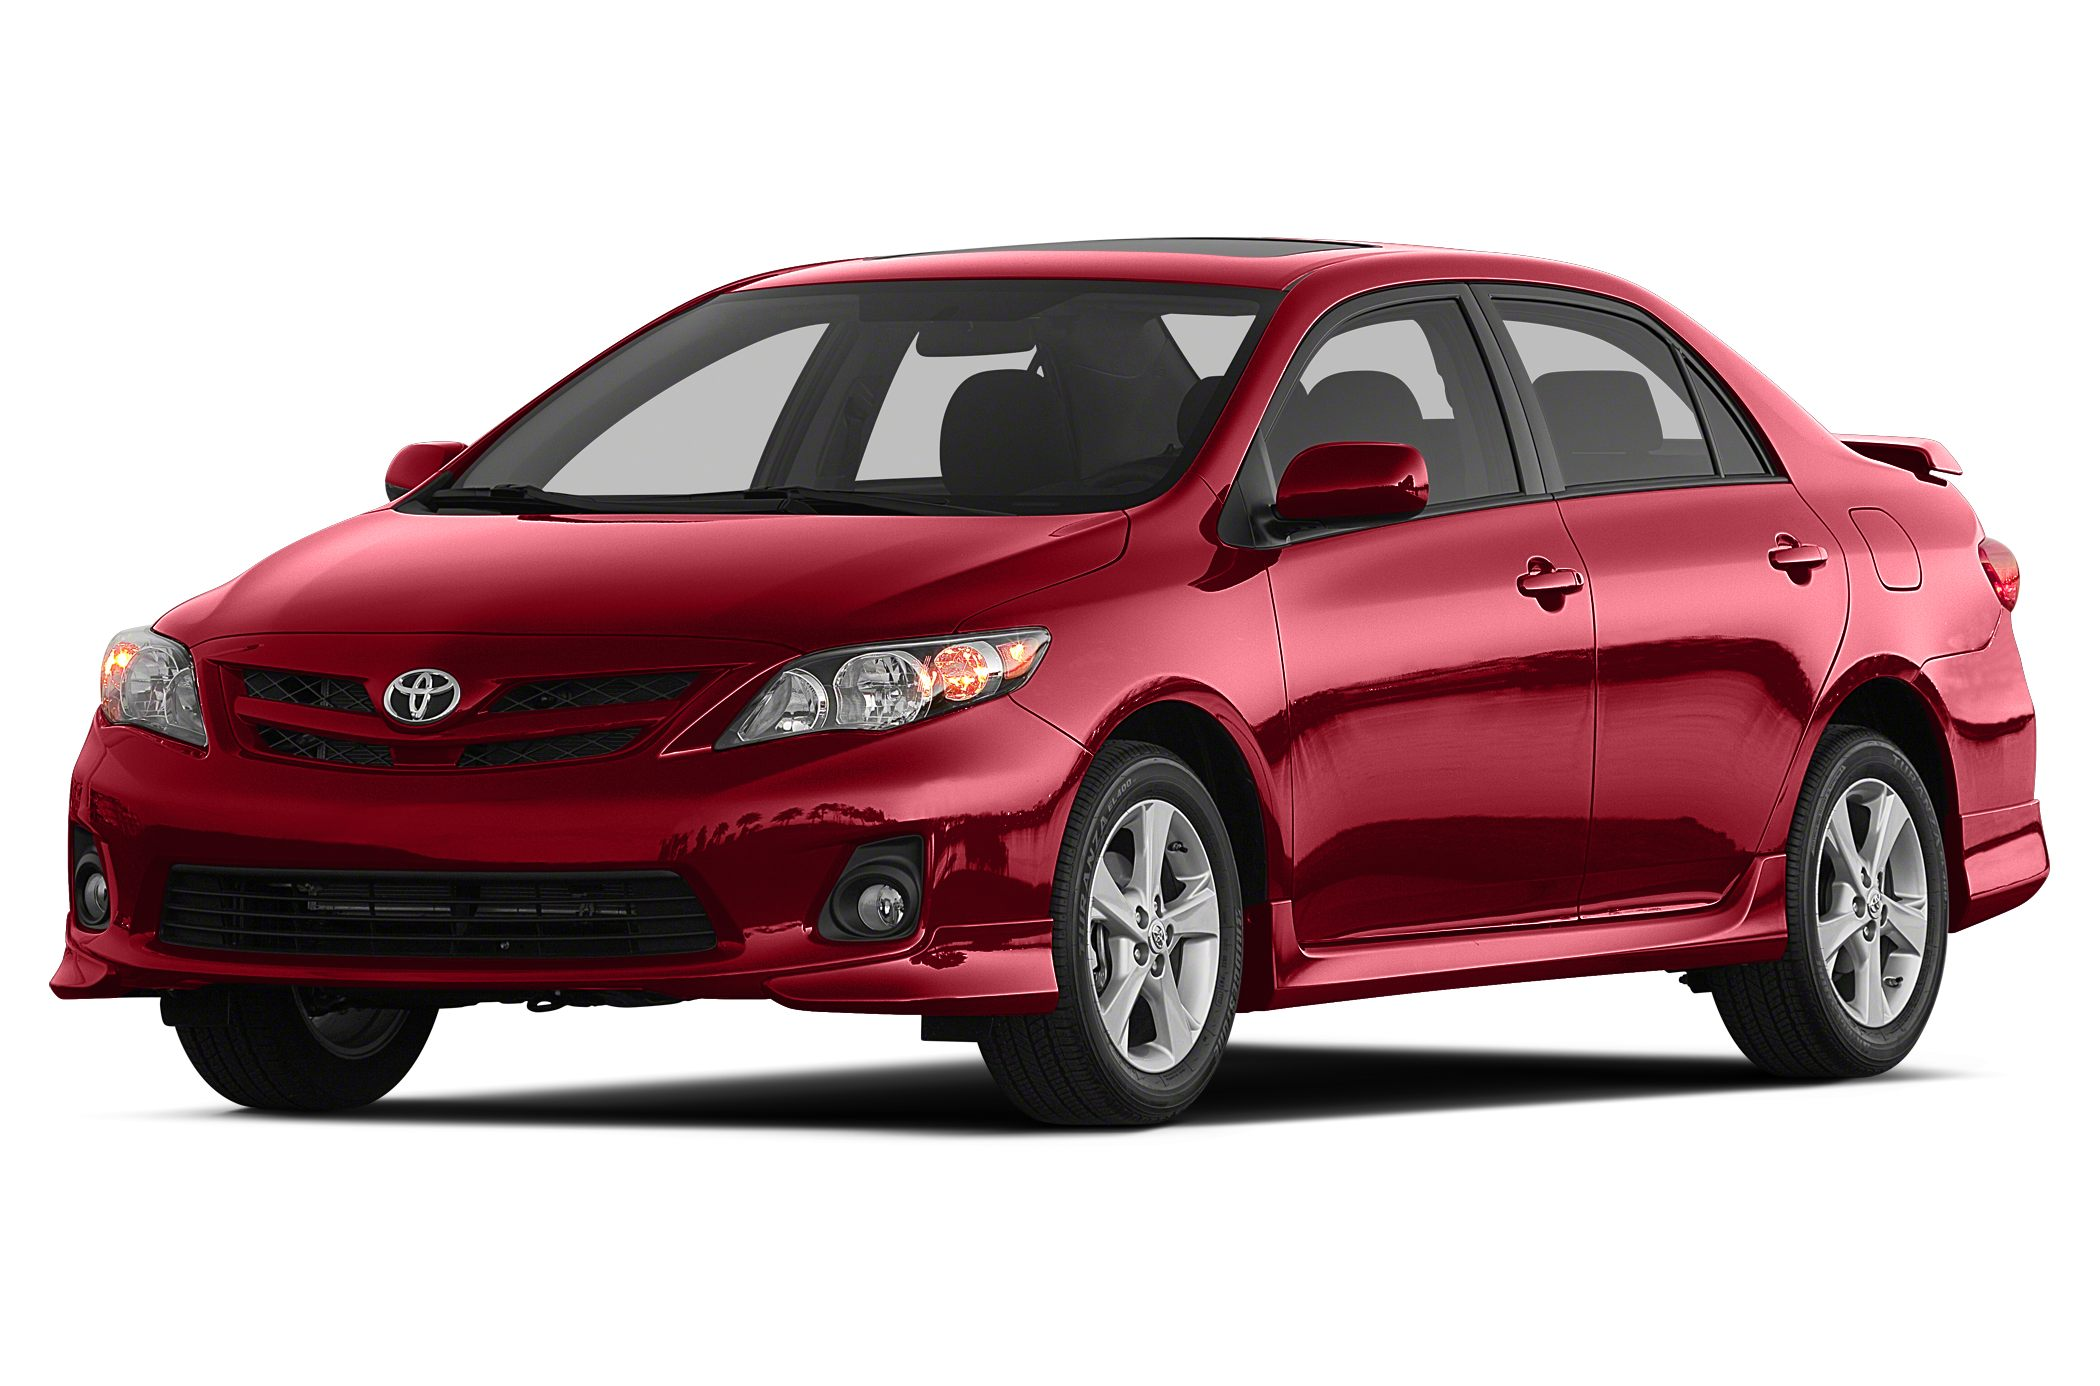 2013 Toyota Corolla S S trim FUEL EFFICIENT 34 MPG Hwy26 MPG City CARFAX 1-Owner Moonroof Blu